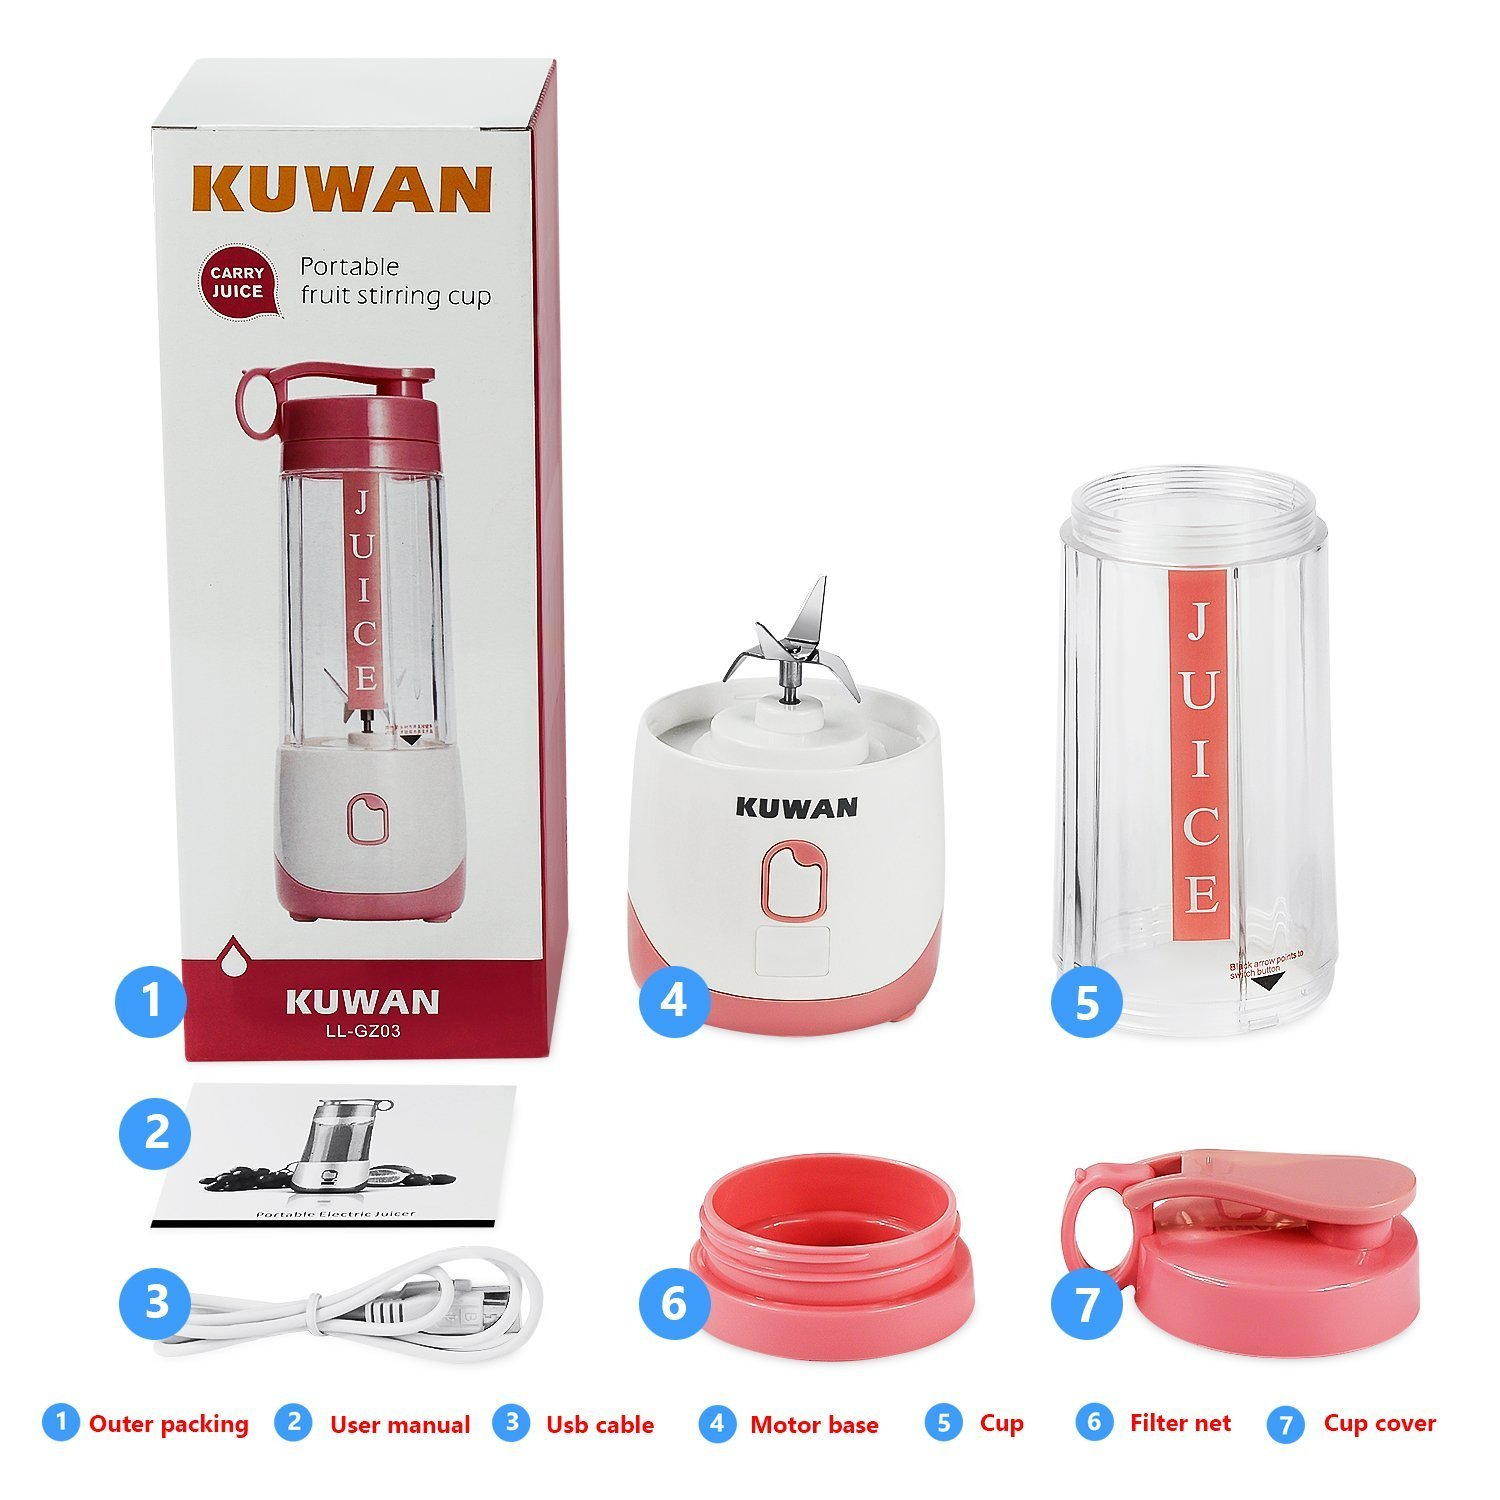 KUWAN Mini Electric Fruit Juicer Rechargeable portable Blender with USB Charging Cable install safety protection program by KUWAN (Image #1)